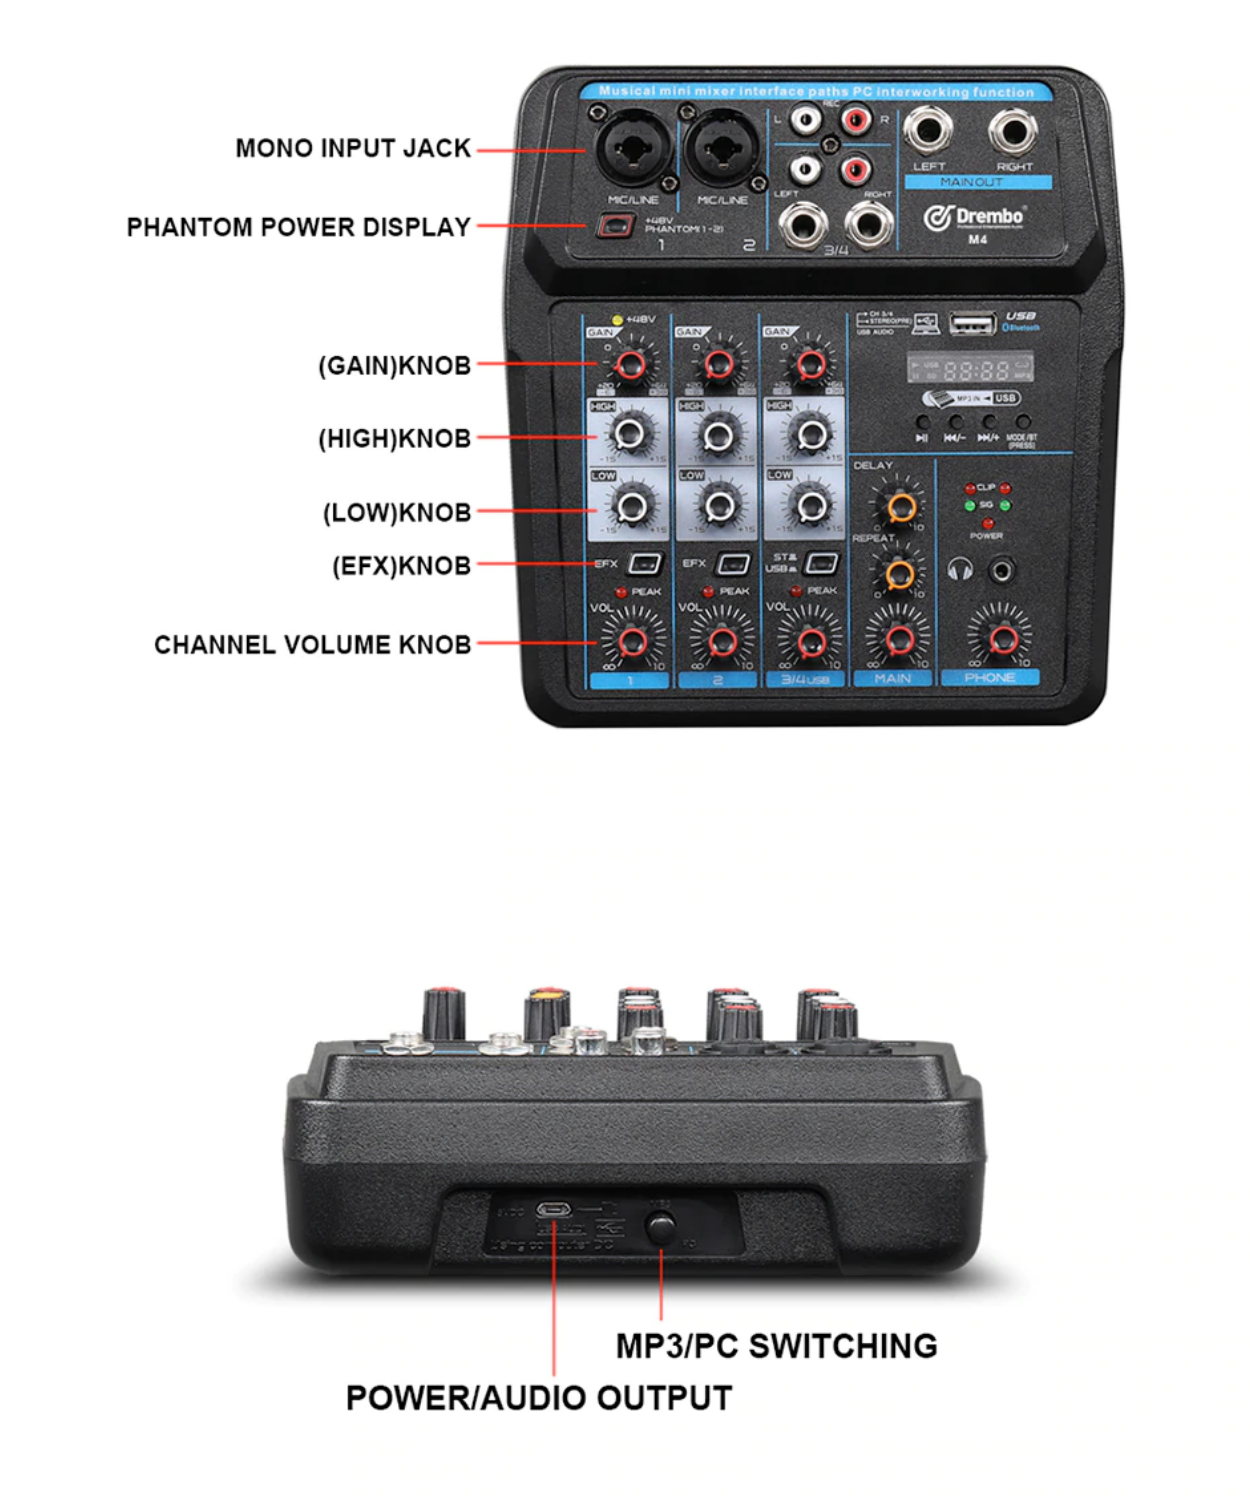 6 channel mixers